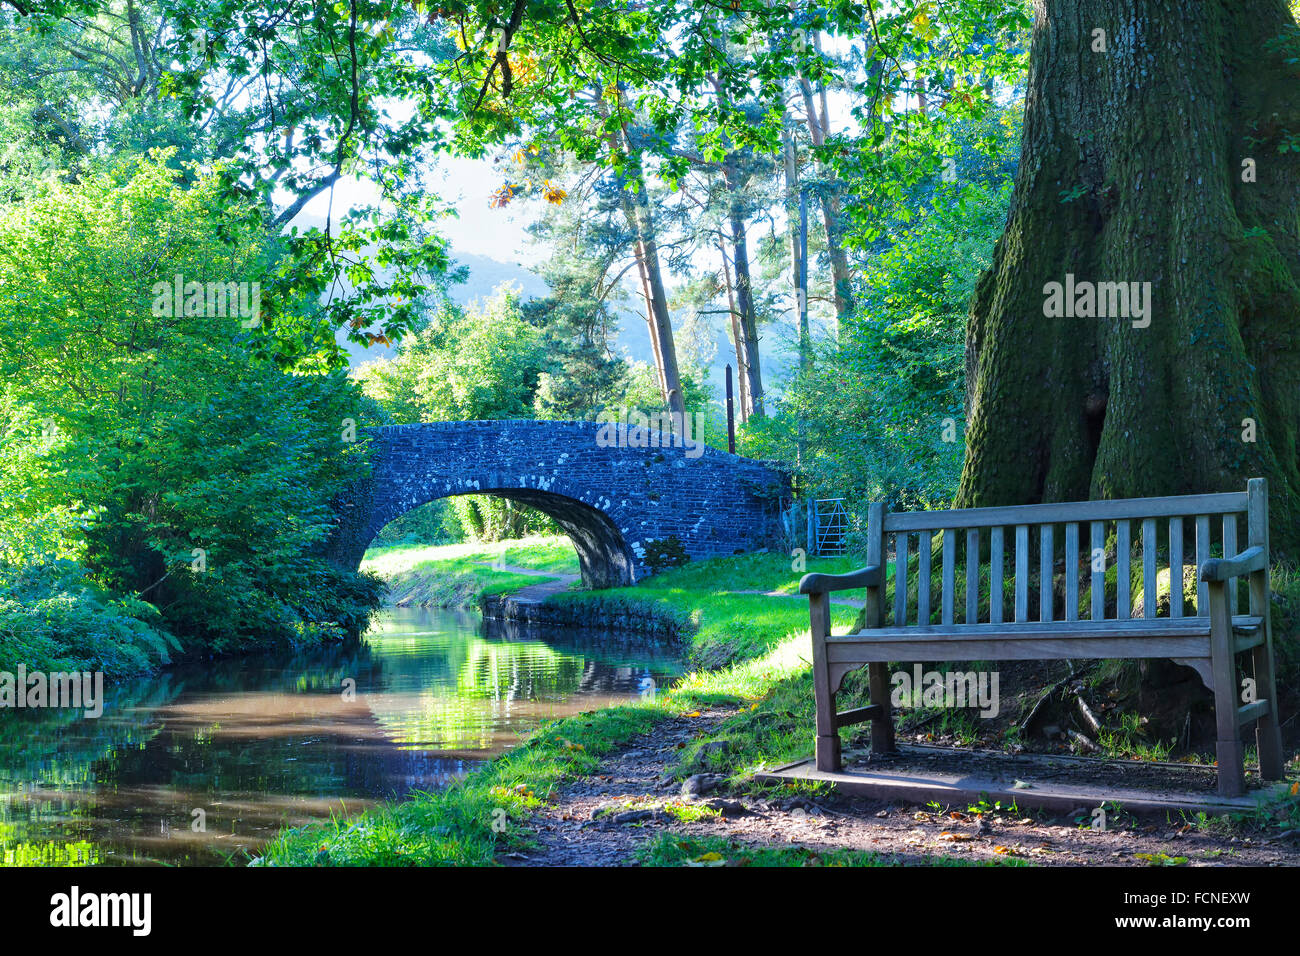 Wooden bench by an old oak tree, canal towpath and stone bridge on a forest edge, with sunshine glimmering through - Stock Image